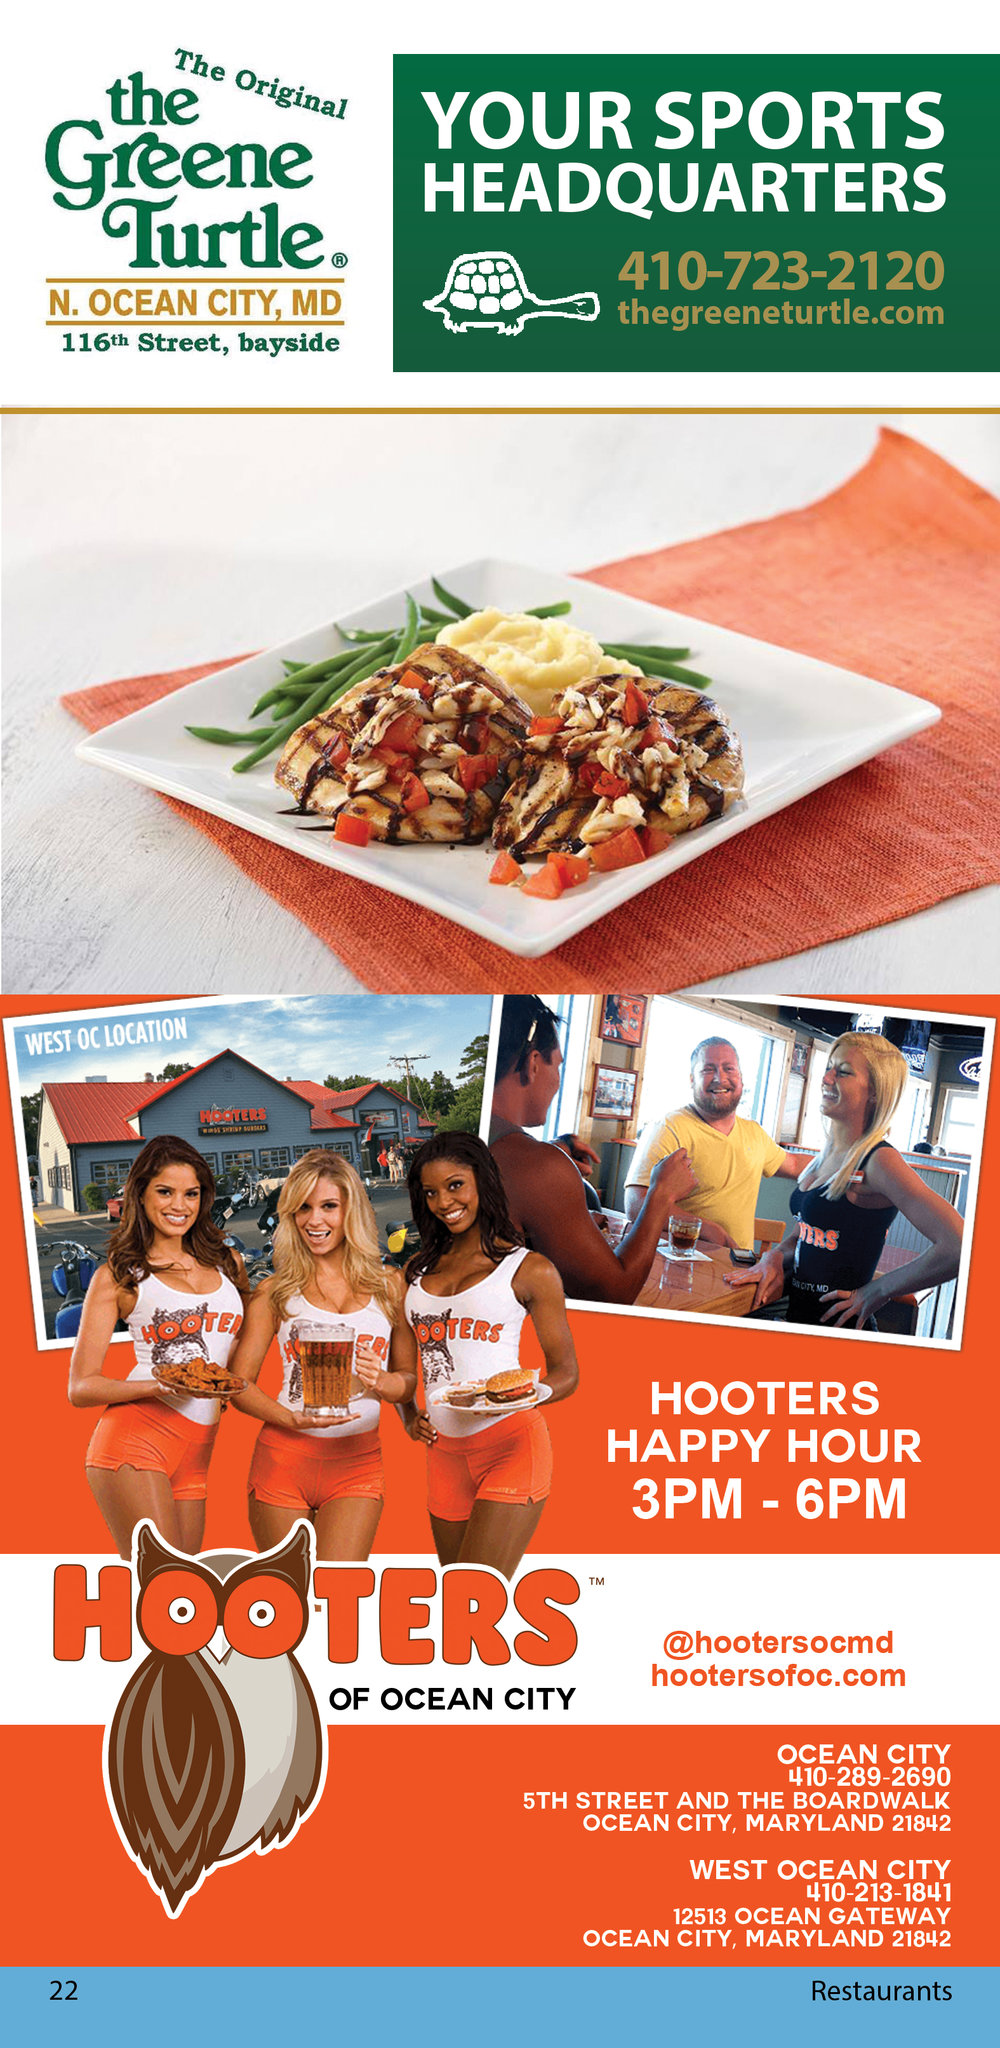 Page-22-Green-Turtle-&-Hooters.jpg